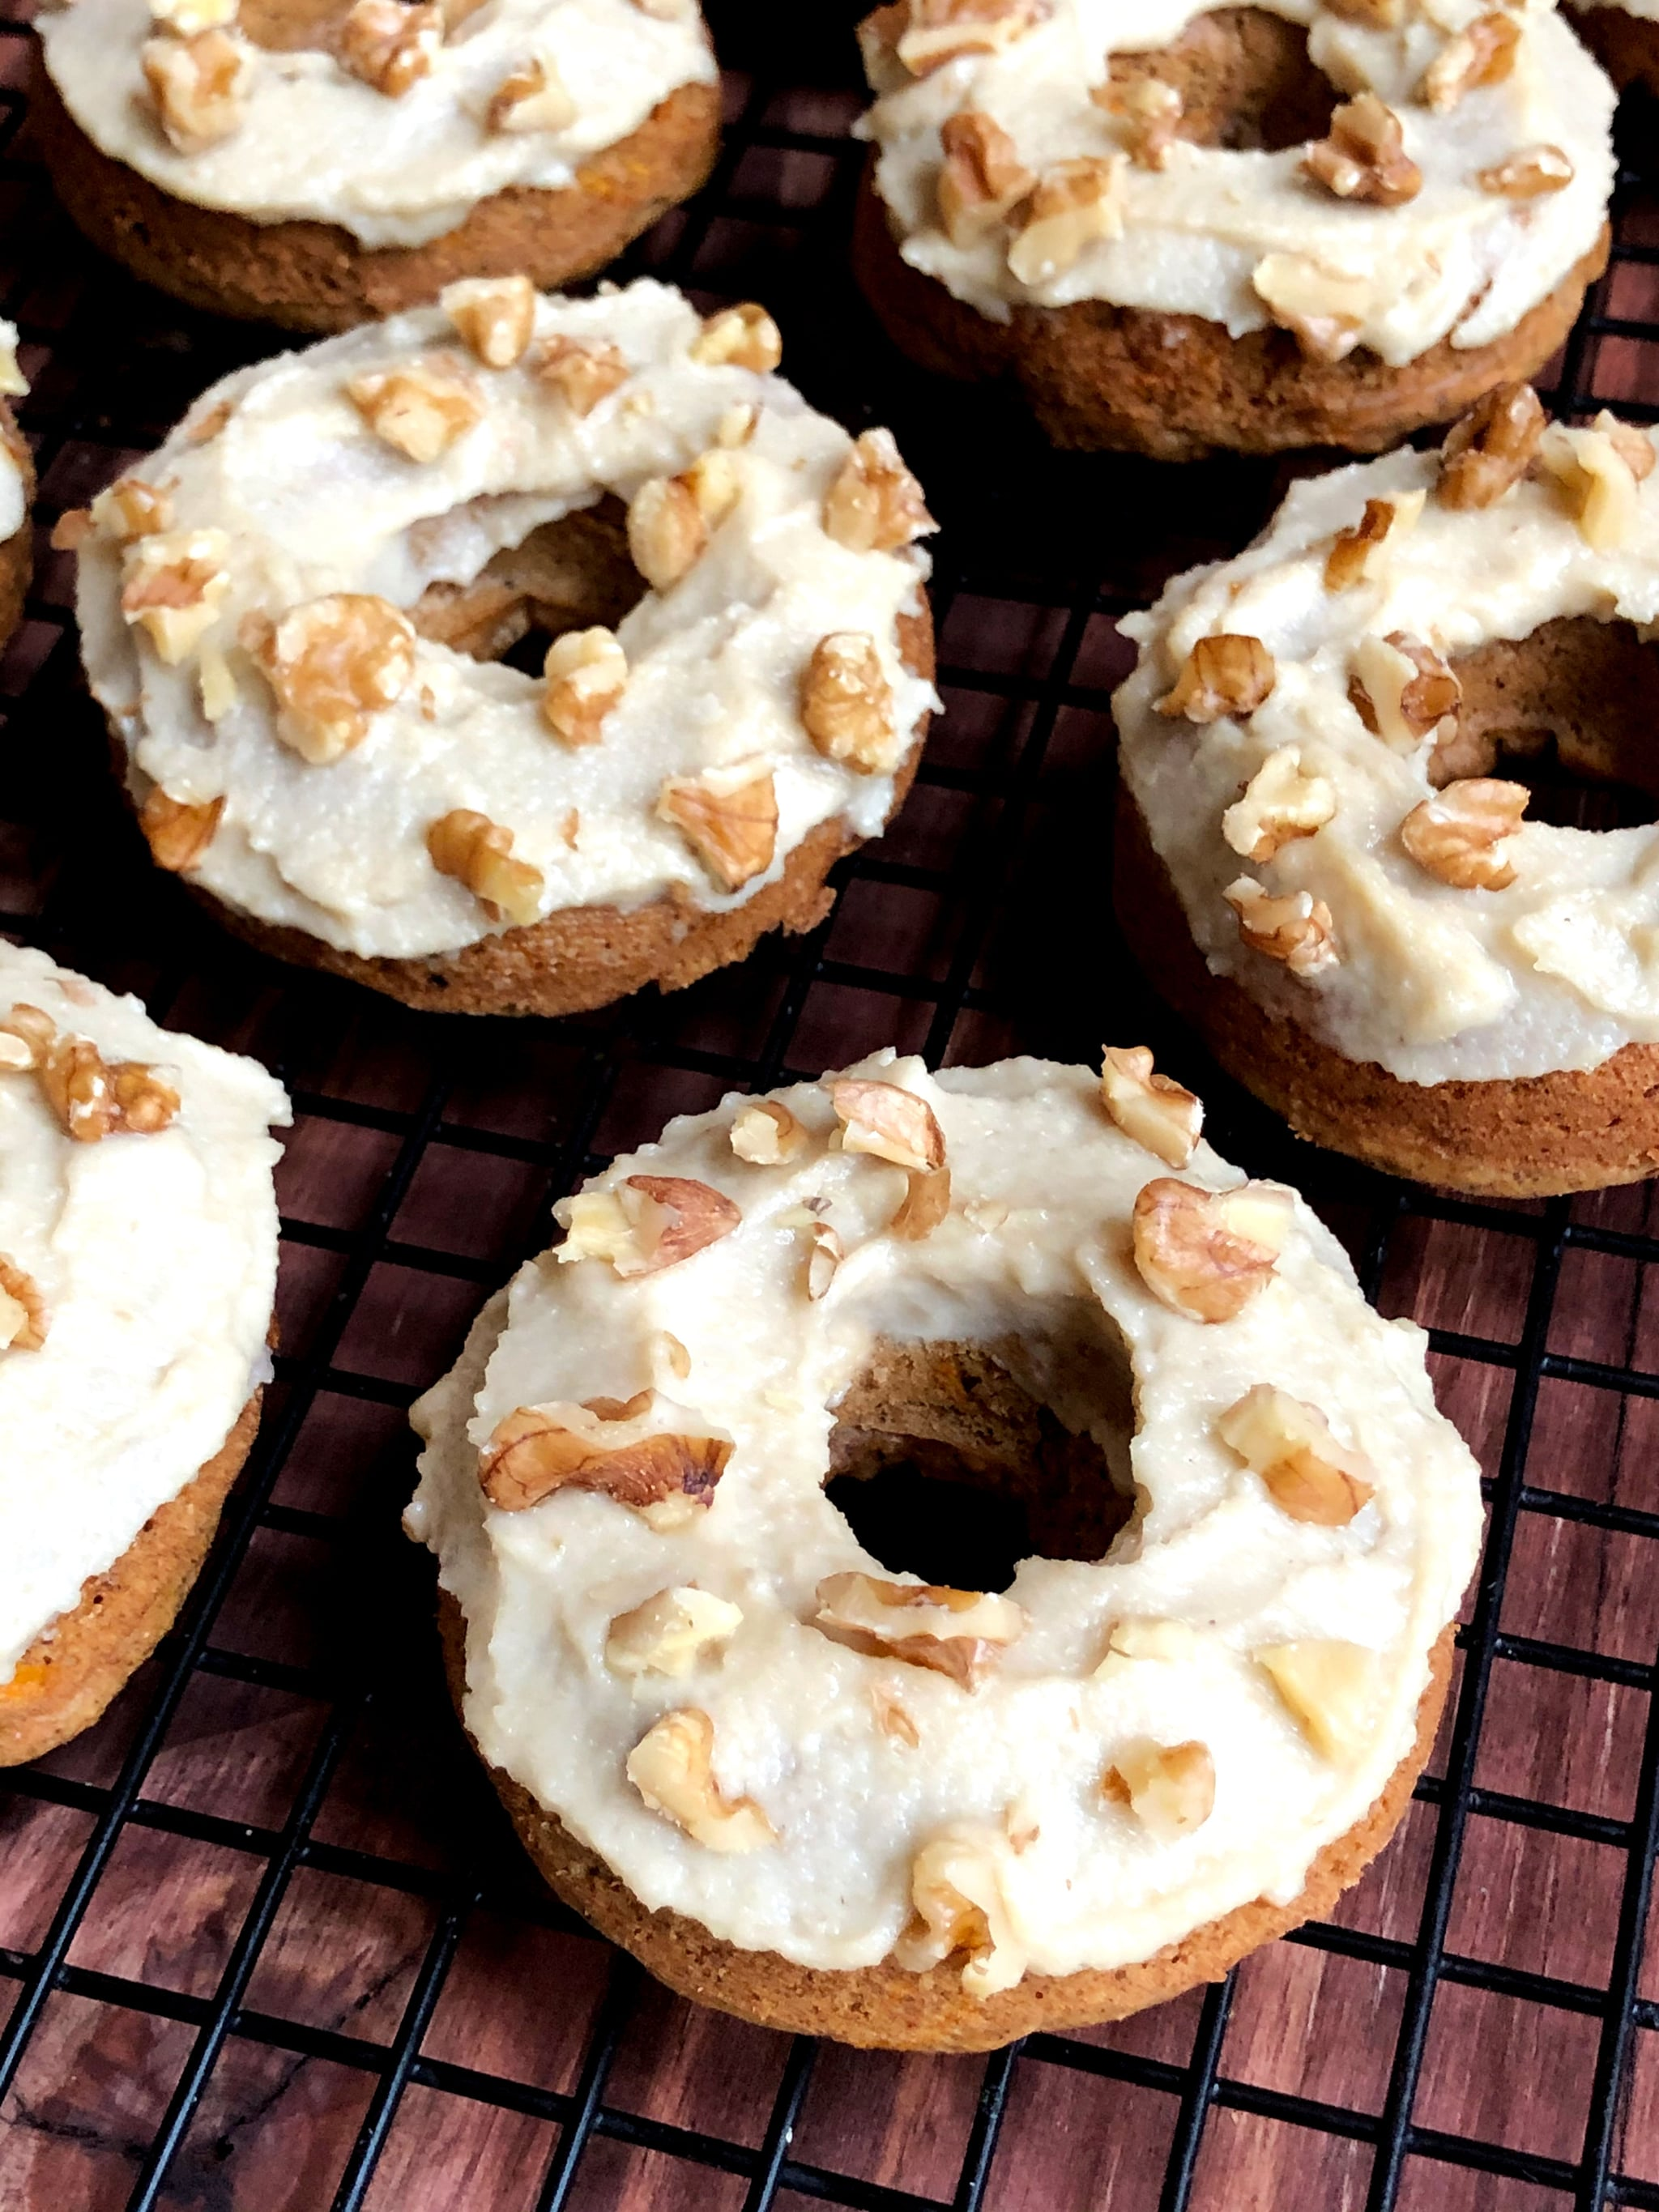 Vegan Carrot Cake Doughnuts With Creamy Maple Cashew Frosting Offer 7 Grams of Protein